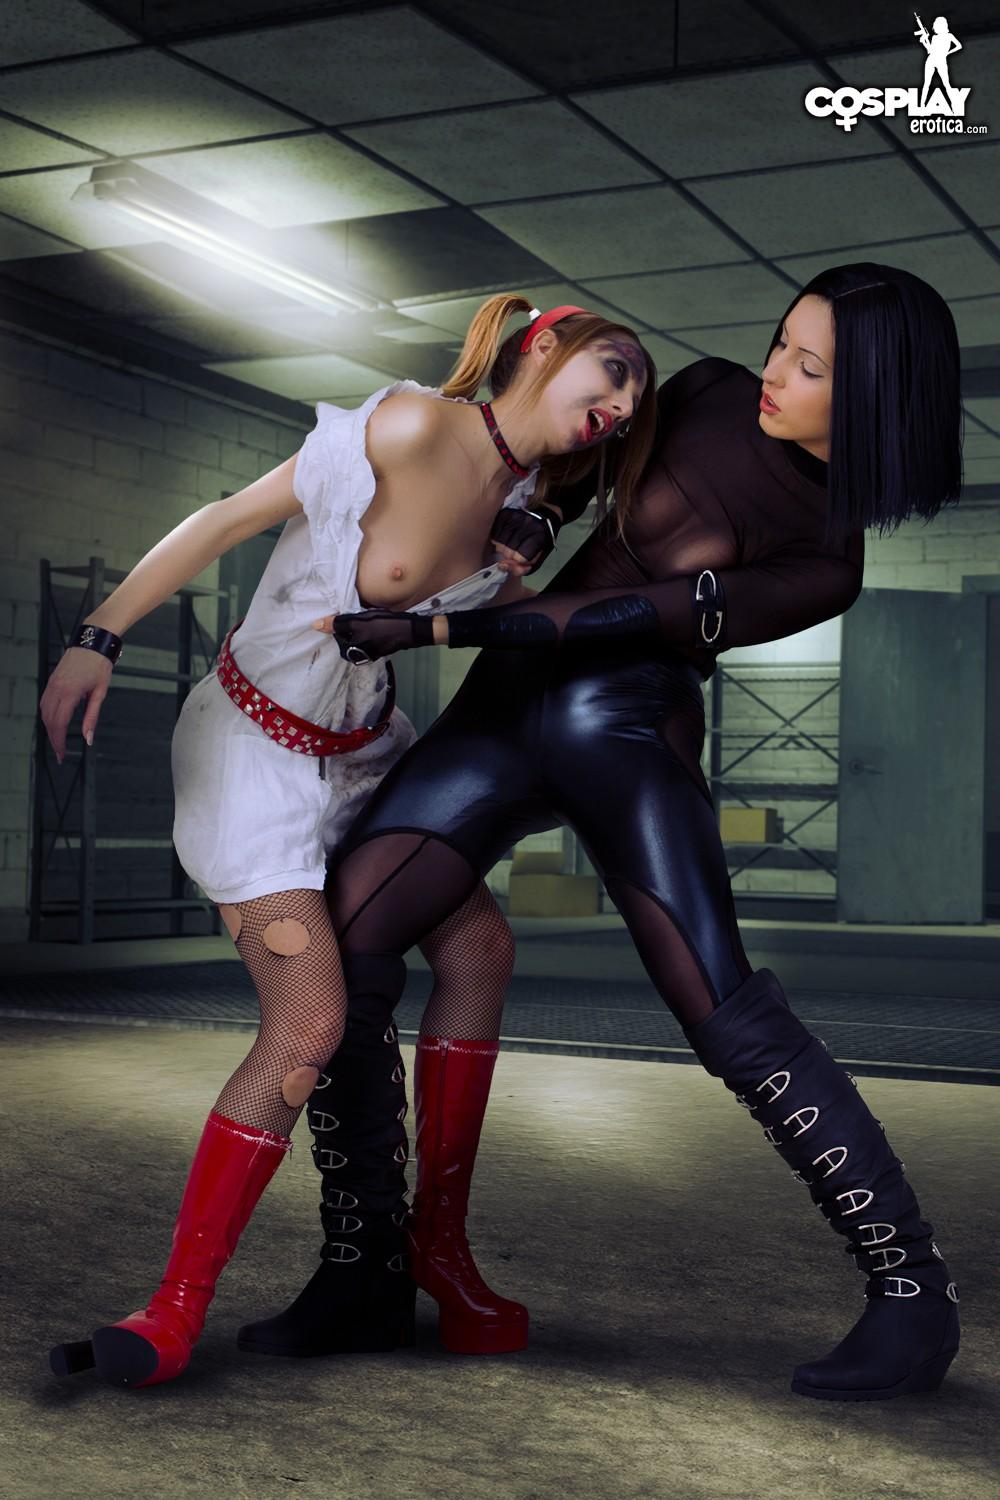 Sexy Girls Angela And Anne Get Their Resident Evil Cosplay -5241